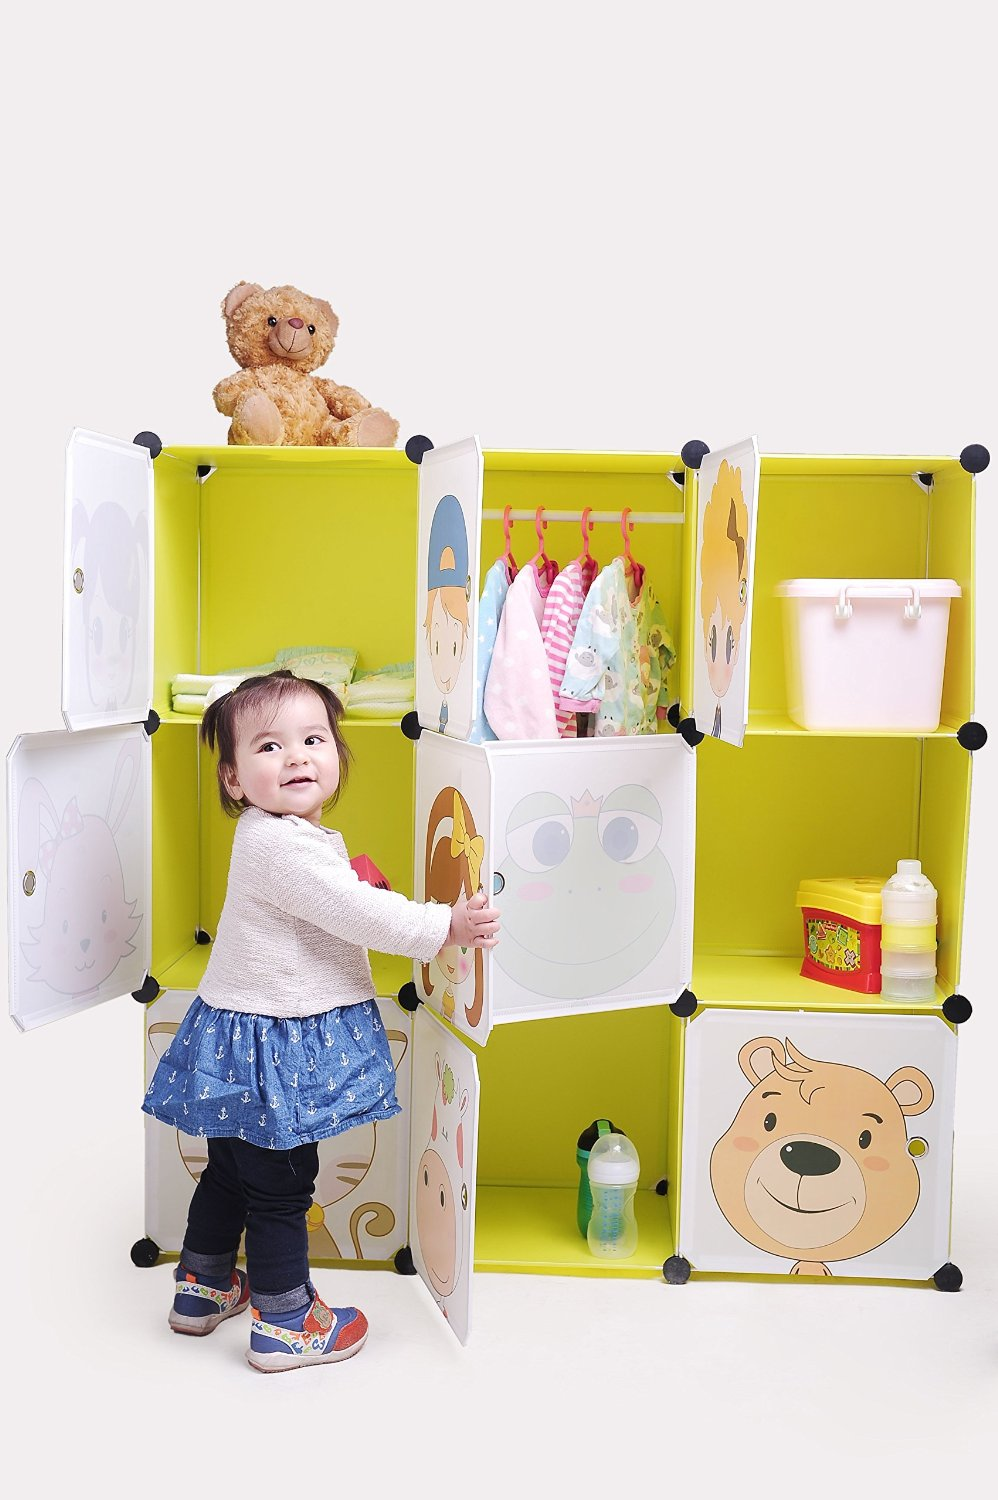 20 Life Changing Baby Clothes Organizers | www.onecrazyhouse.com